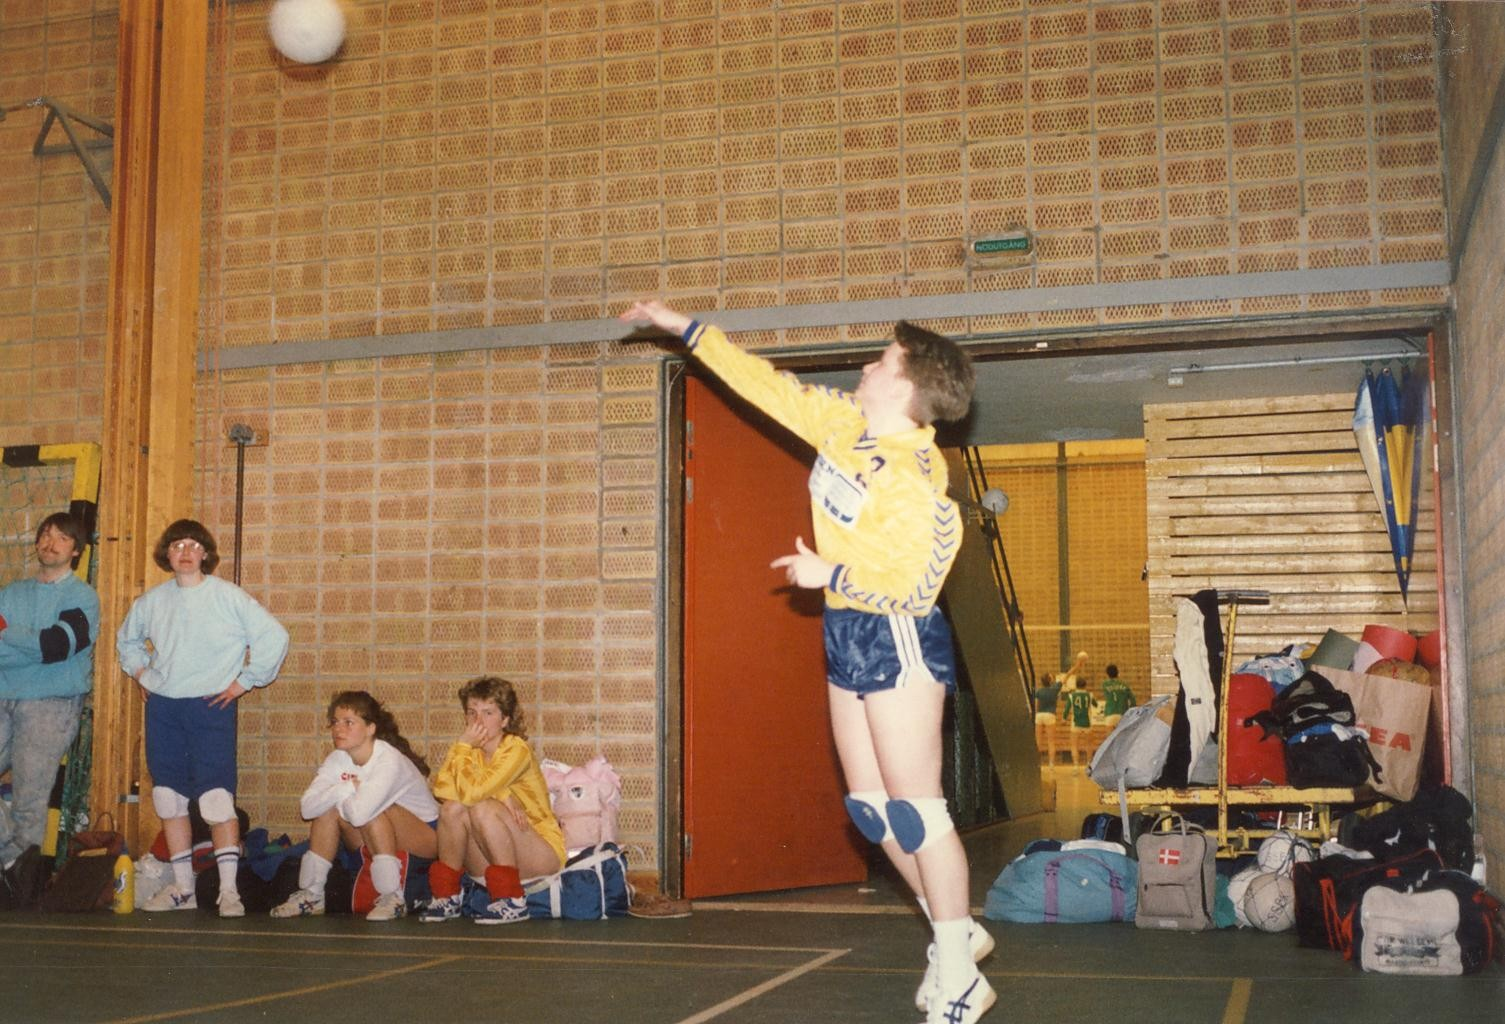 Scan12974 VOLLEY I SVERIGE 07-05-88